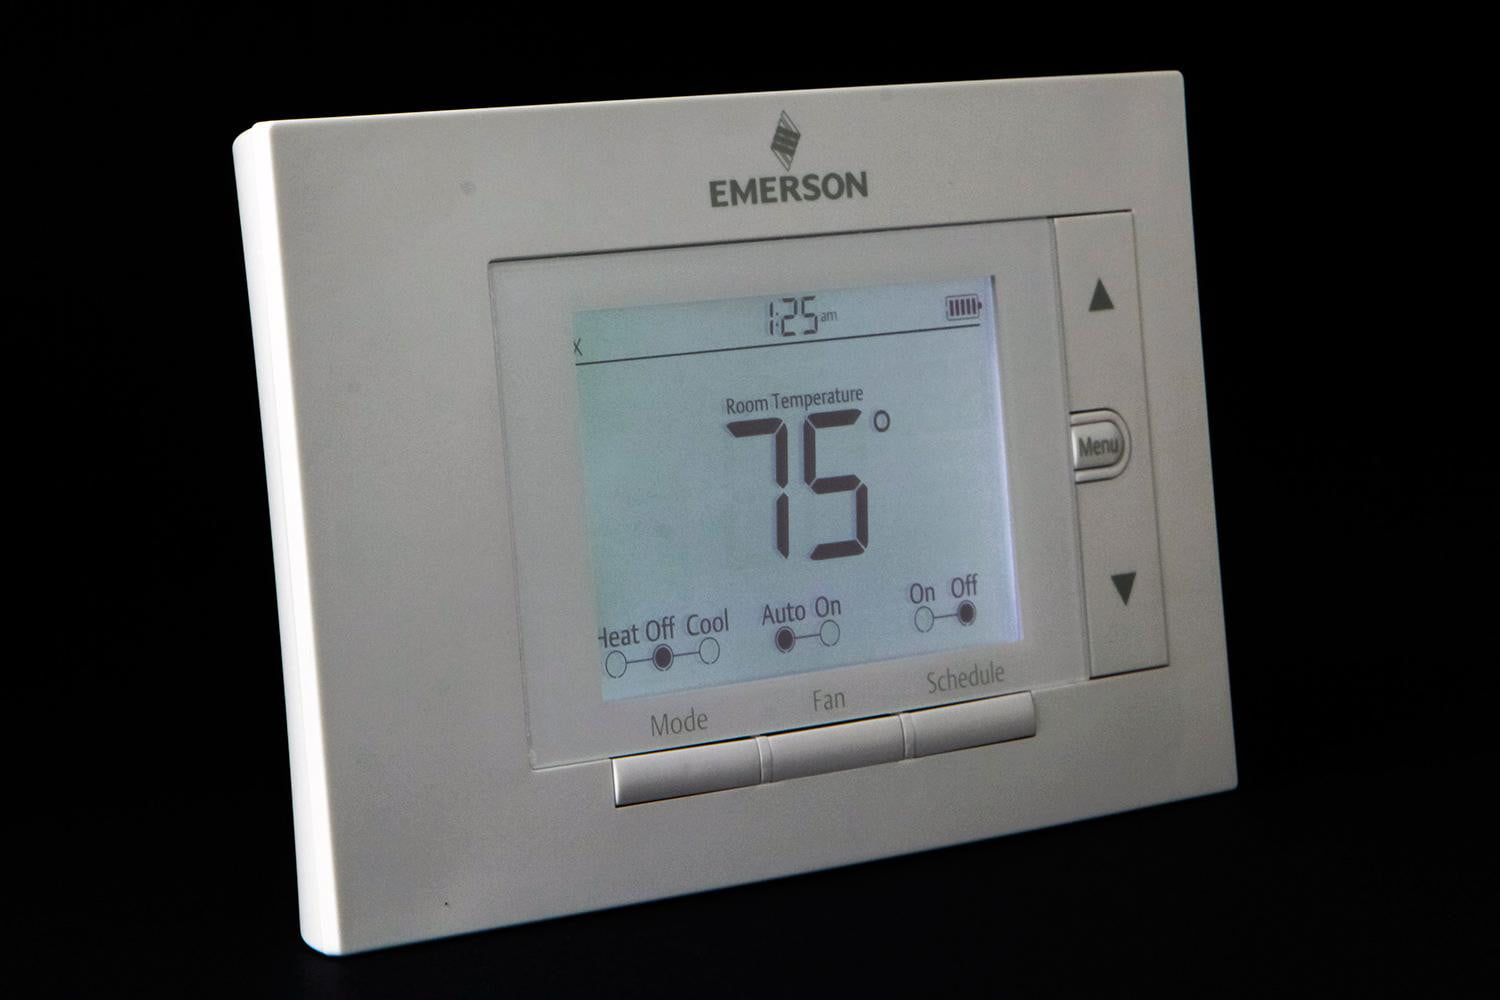 Timer Switch Wiring Diag Schematics Data Diagrams. 5 Wire Thermostat Wiring Diagram Product Review Ecobee Smart Bi Boiler Timer Leviton. Wiring. Maytag Timer 2 044766 3 Wiring Schematic At Scoala.co